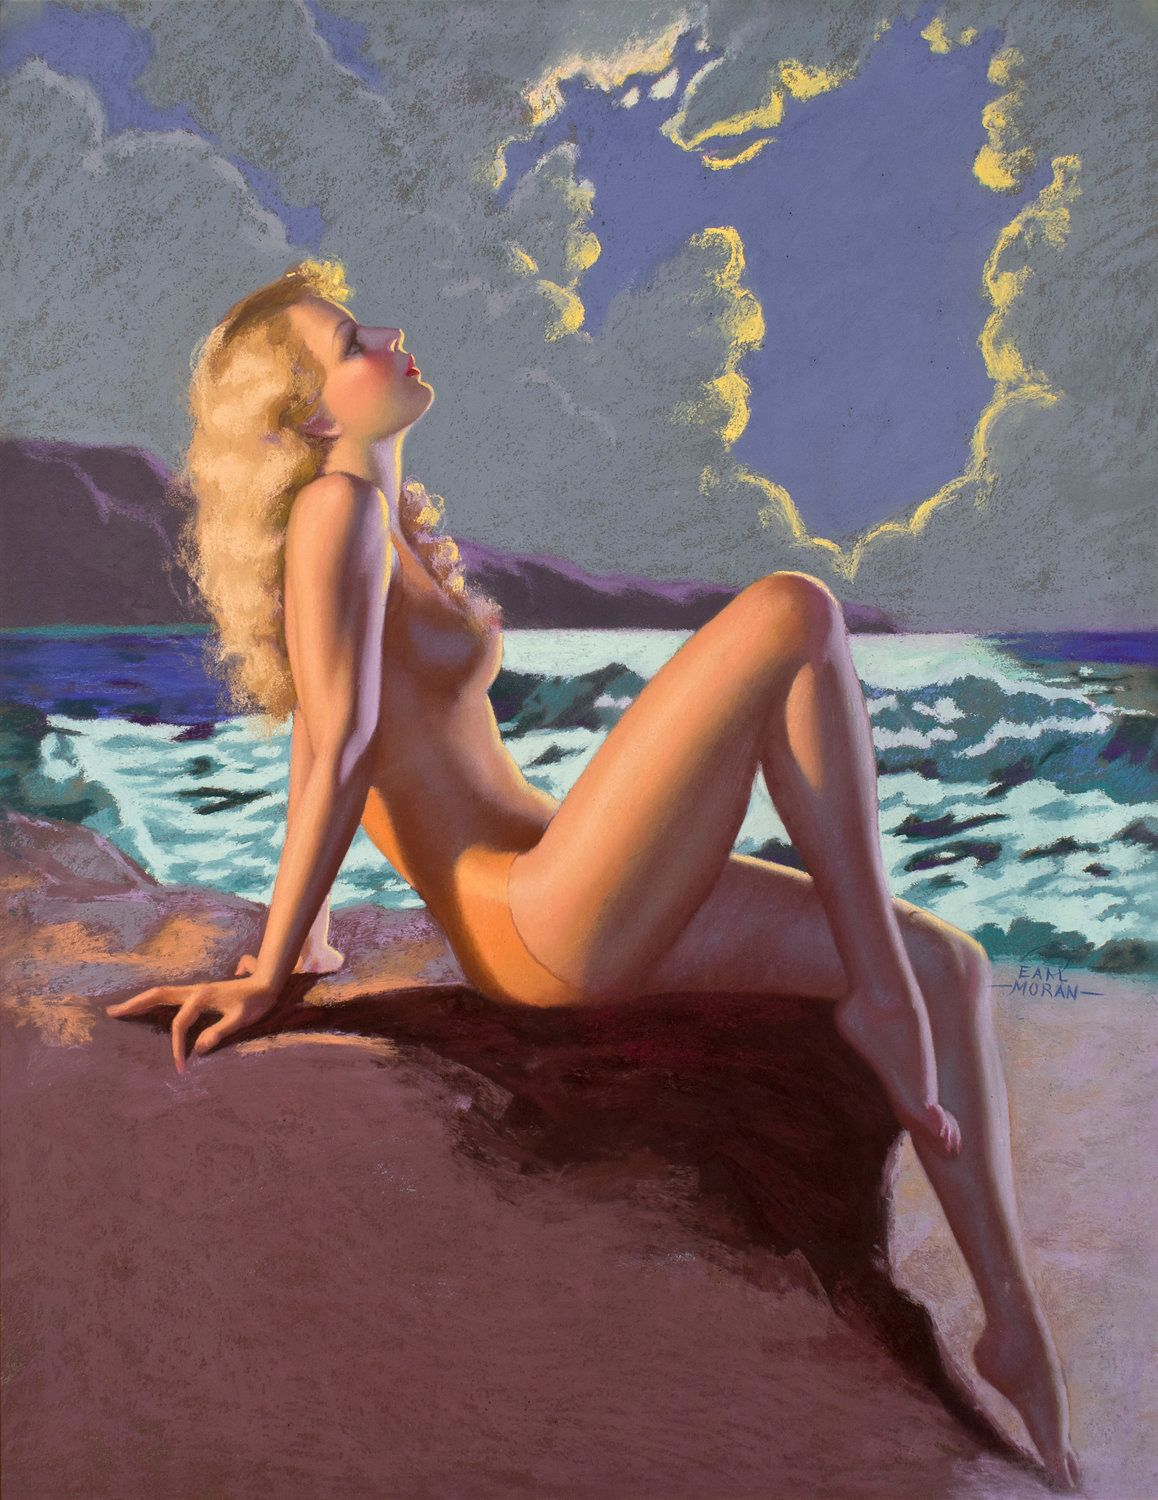 Art erotic teens largest collection